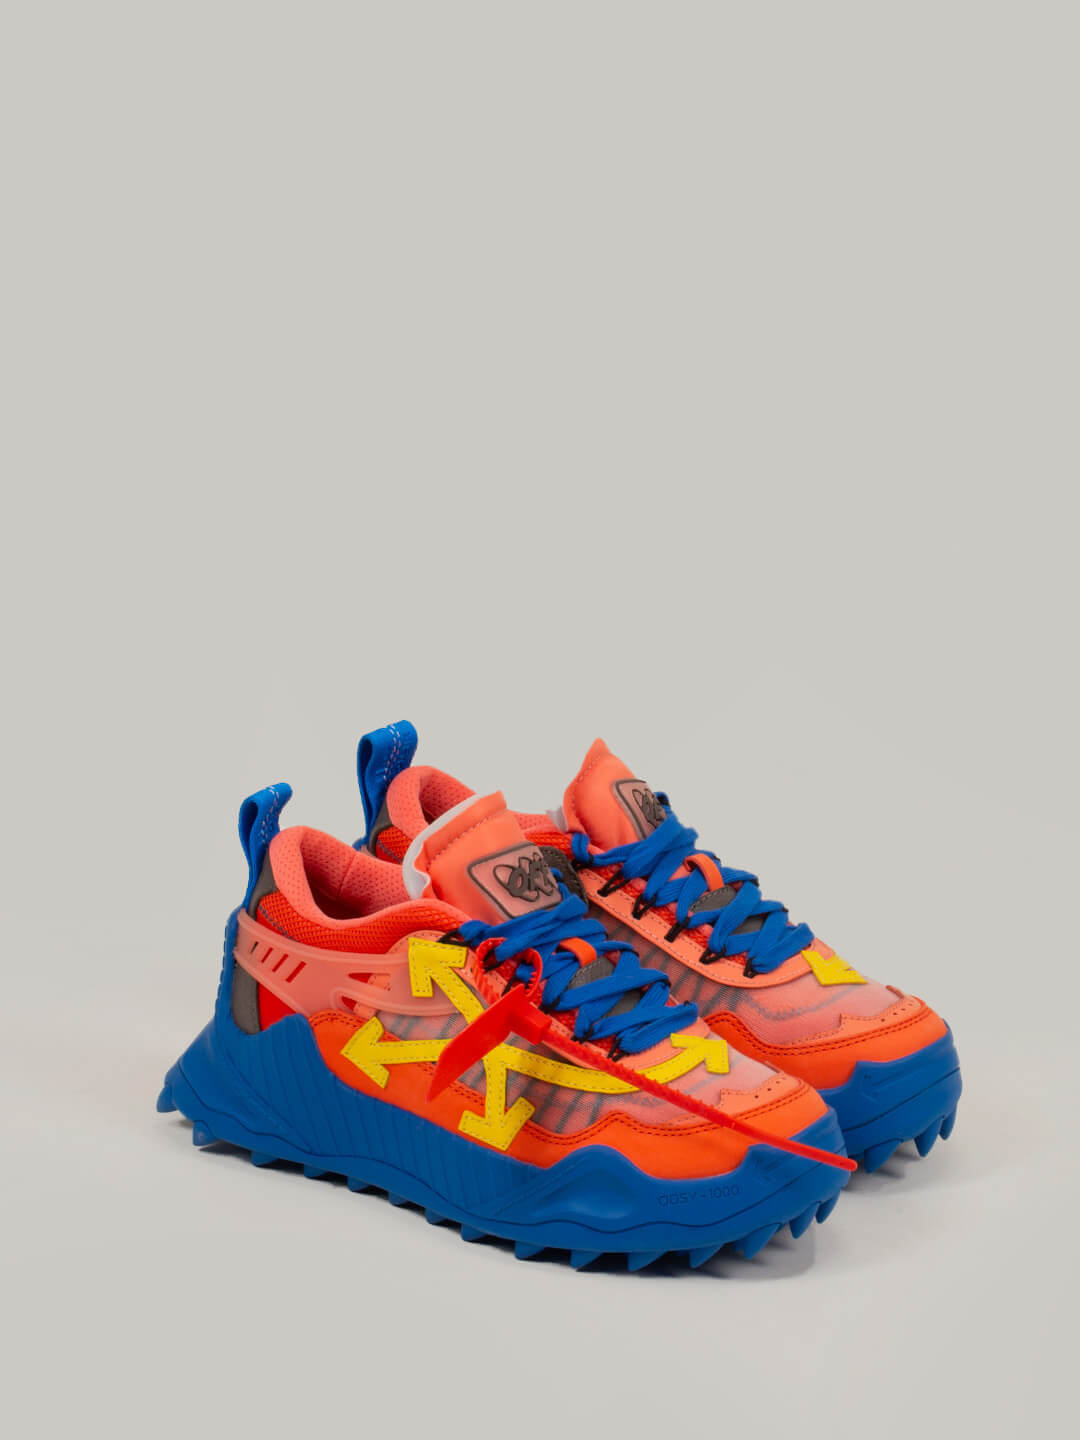 Off-White ODSY-1000 BLUE RED YELLOW